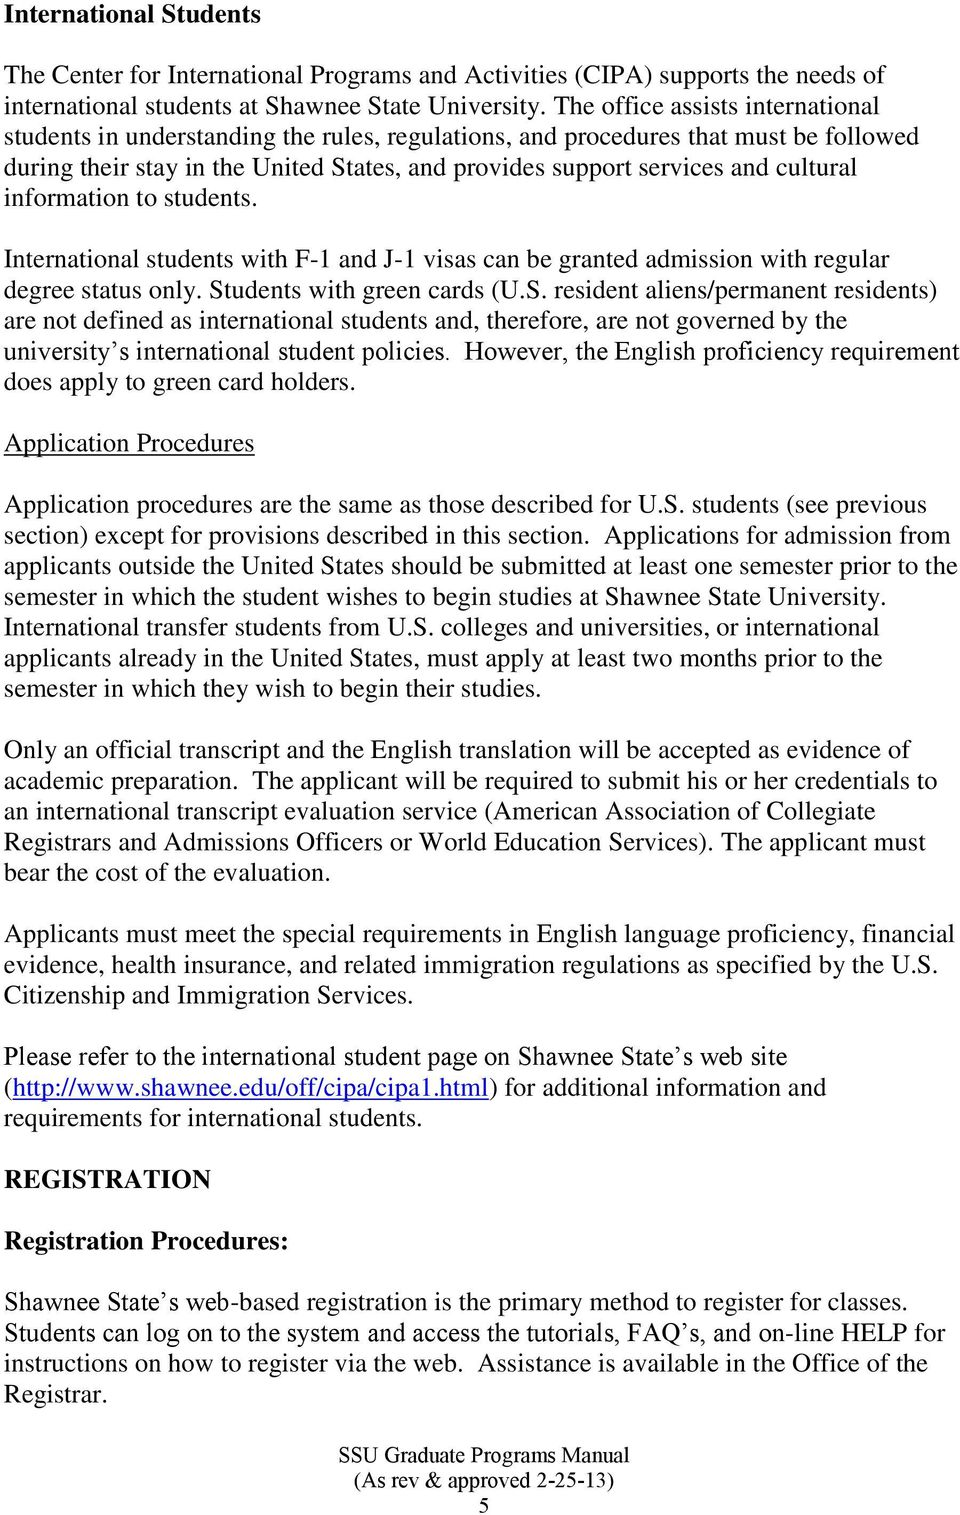 cultural information to students. International students with F-1 and J-1 visas can be granted admission with regular degree status only. St